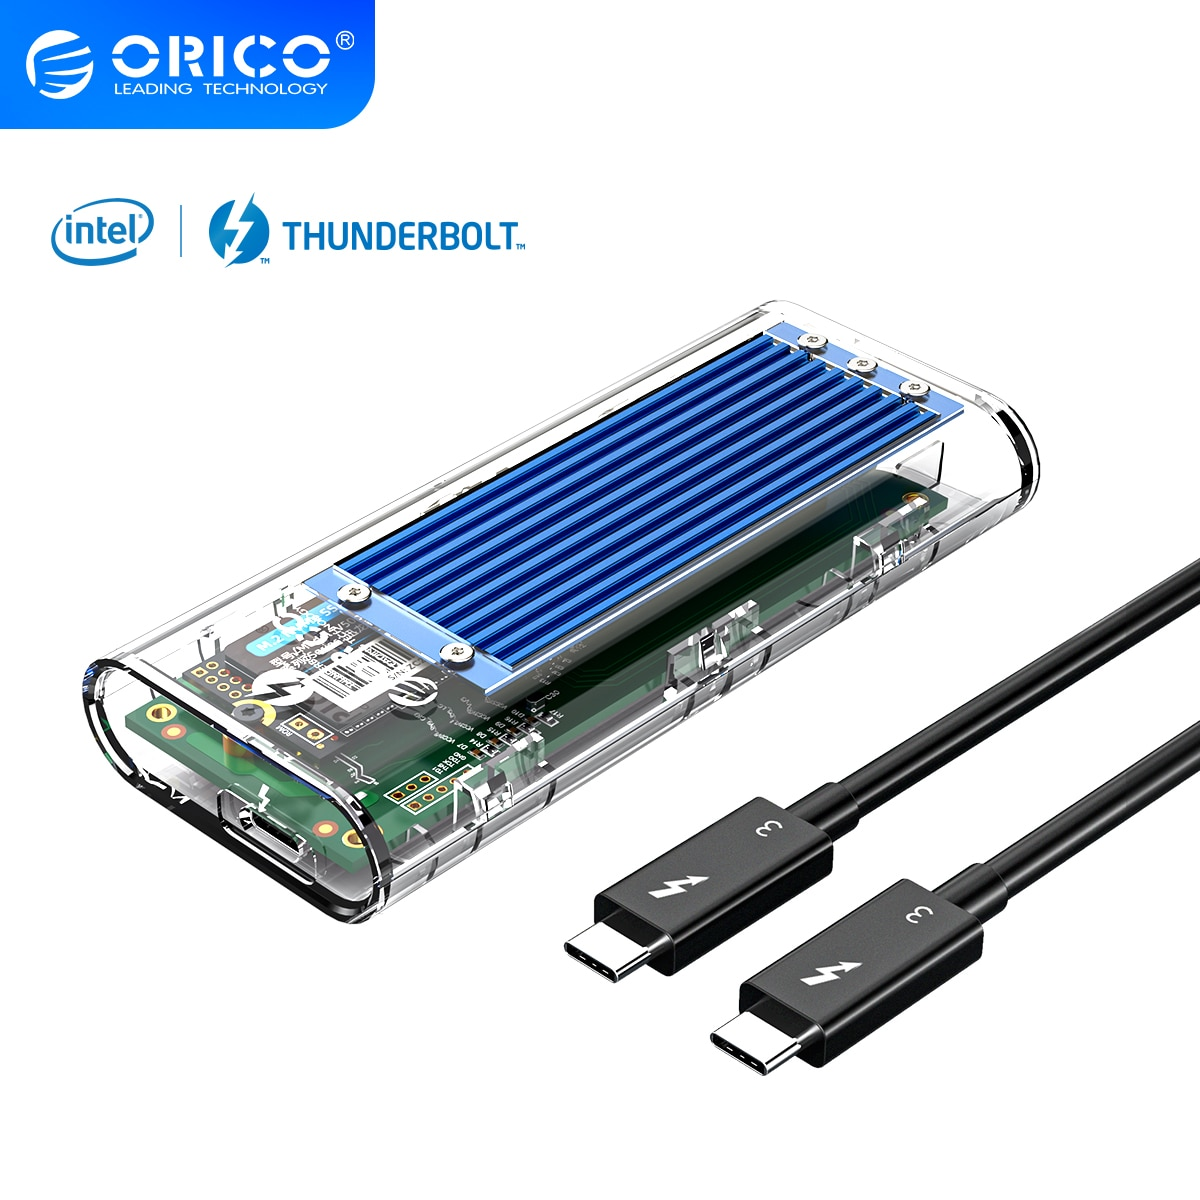 ORICO Thunderbolt 3 M.2 NVME SSD Case 40Gbps USB C Transparent Hard Drive Enclosure Up to 2TB M2 Case With Thunderbolt 3 Cable